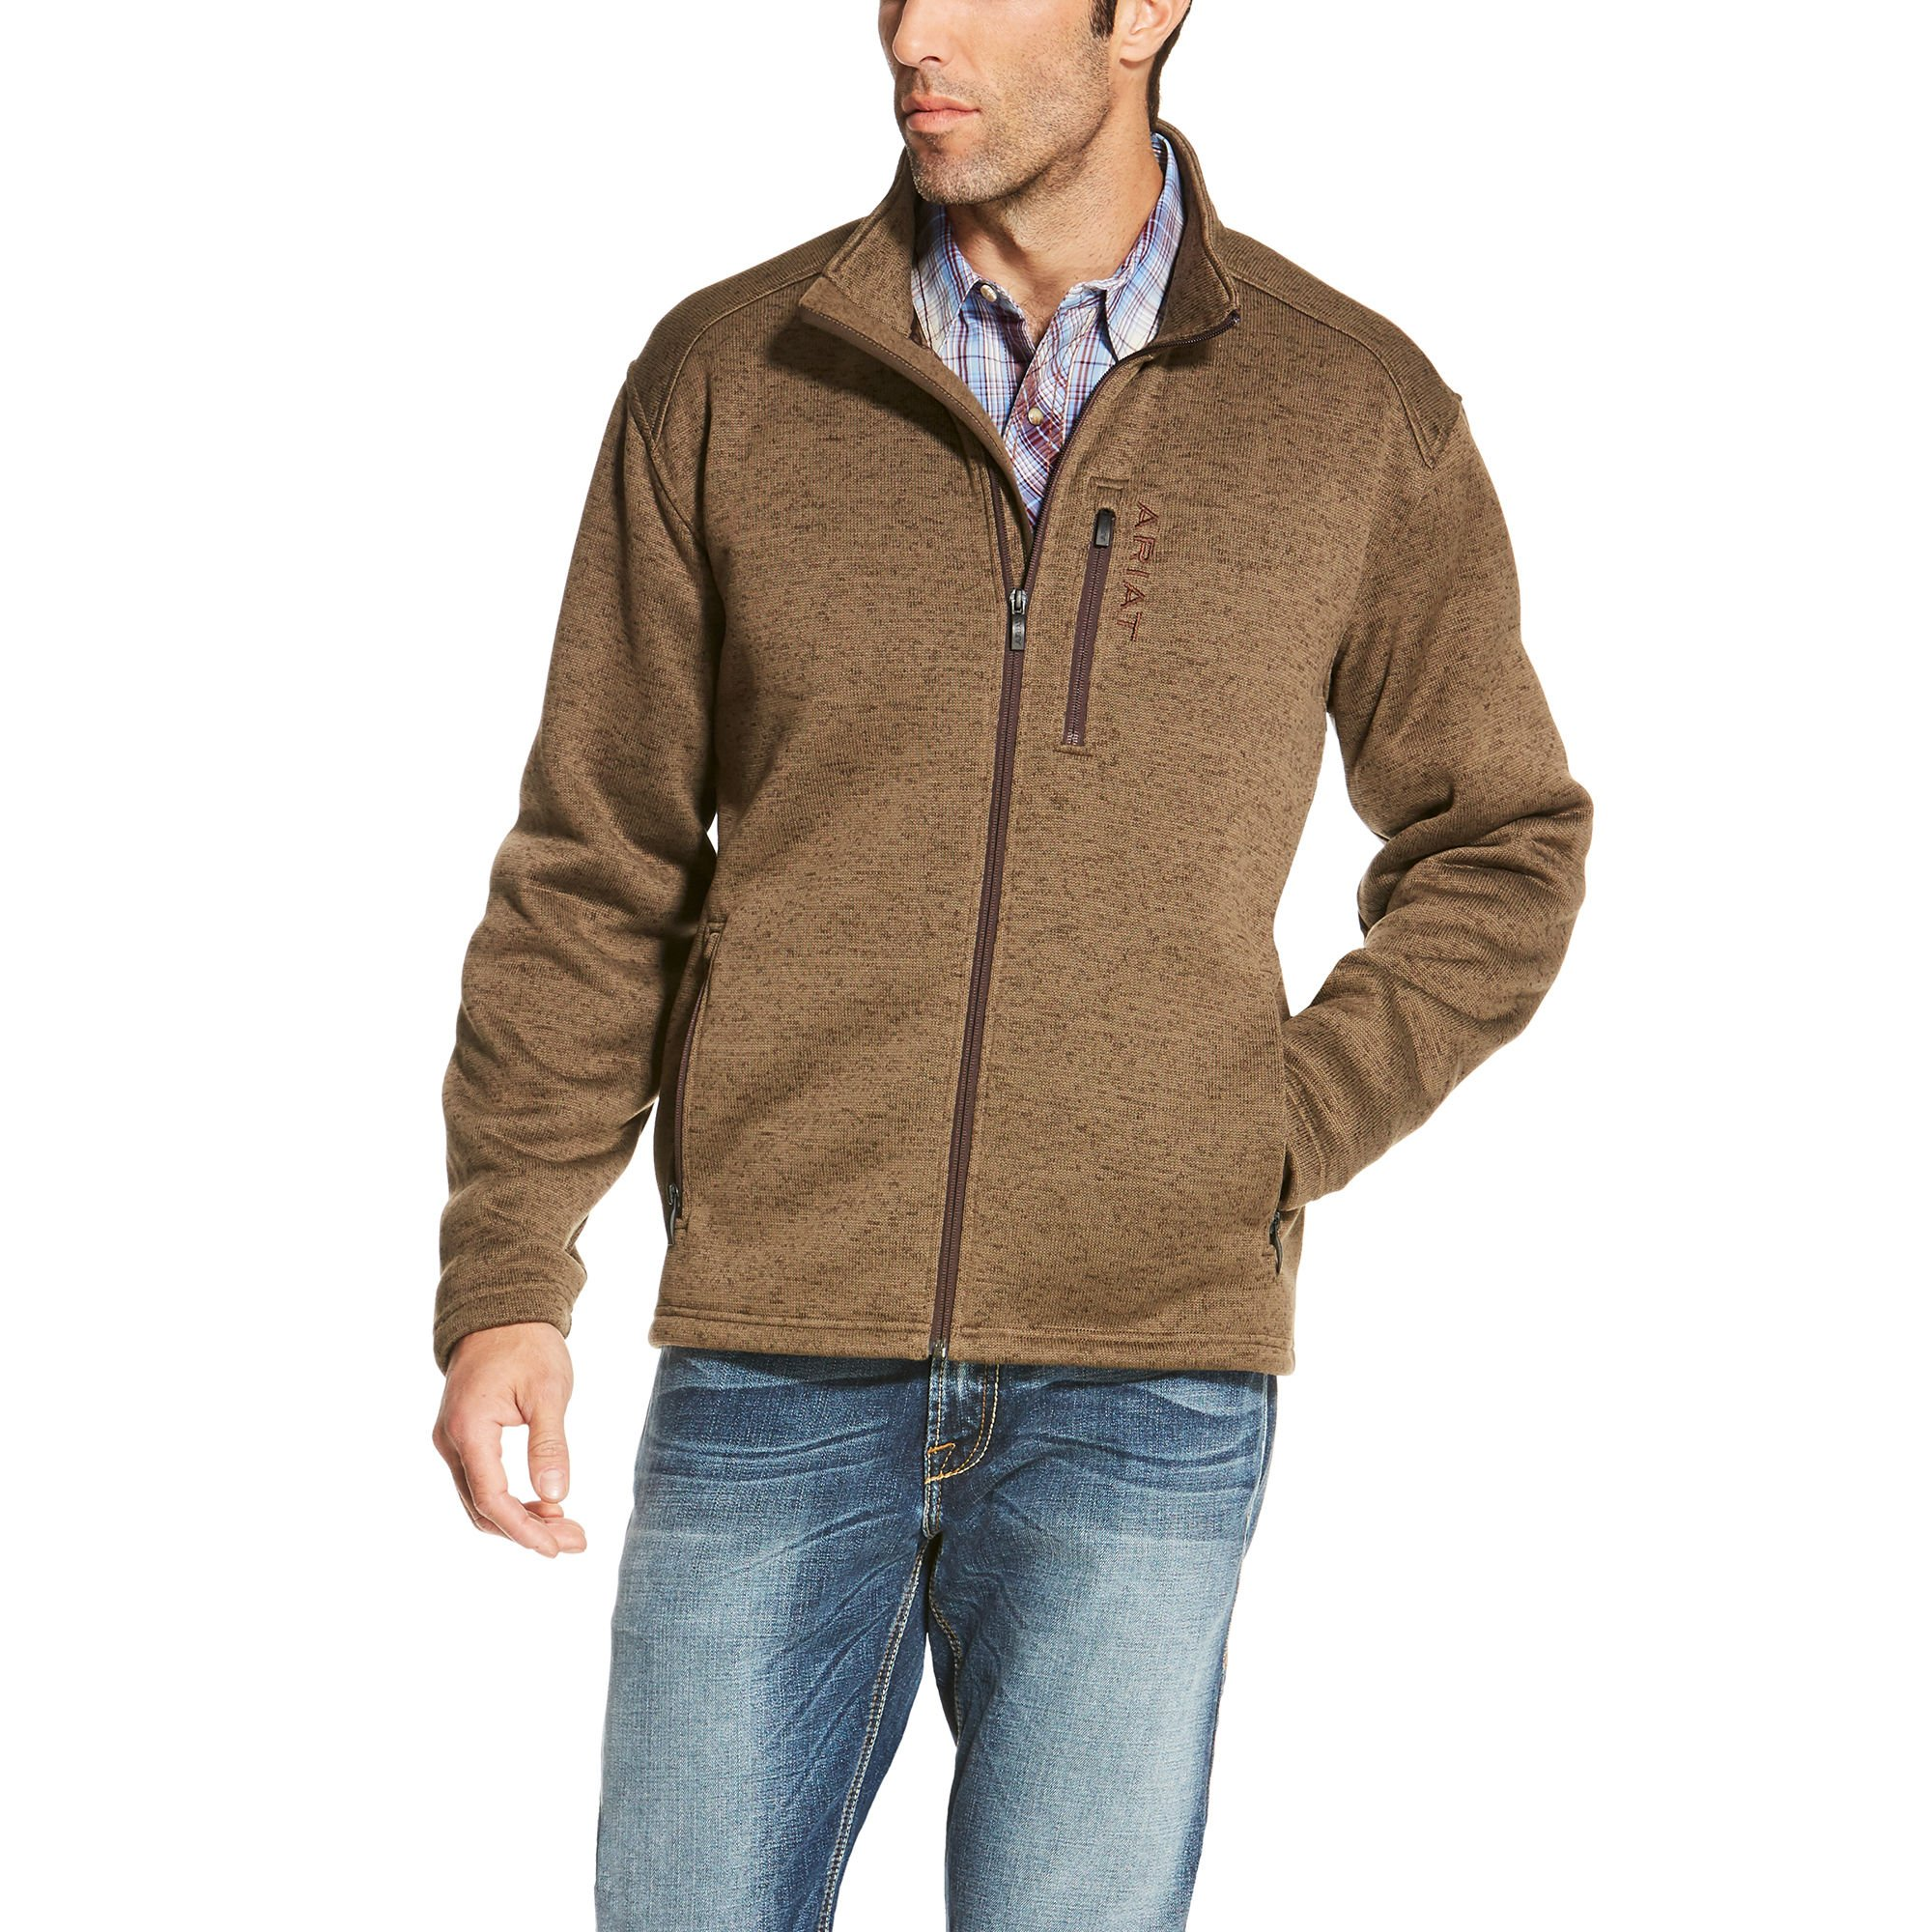 Ariat Men's Caldwell Full Zip Sweater, Fossil, X-Large